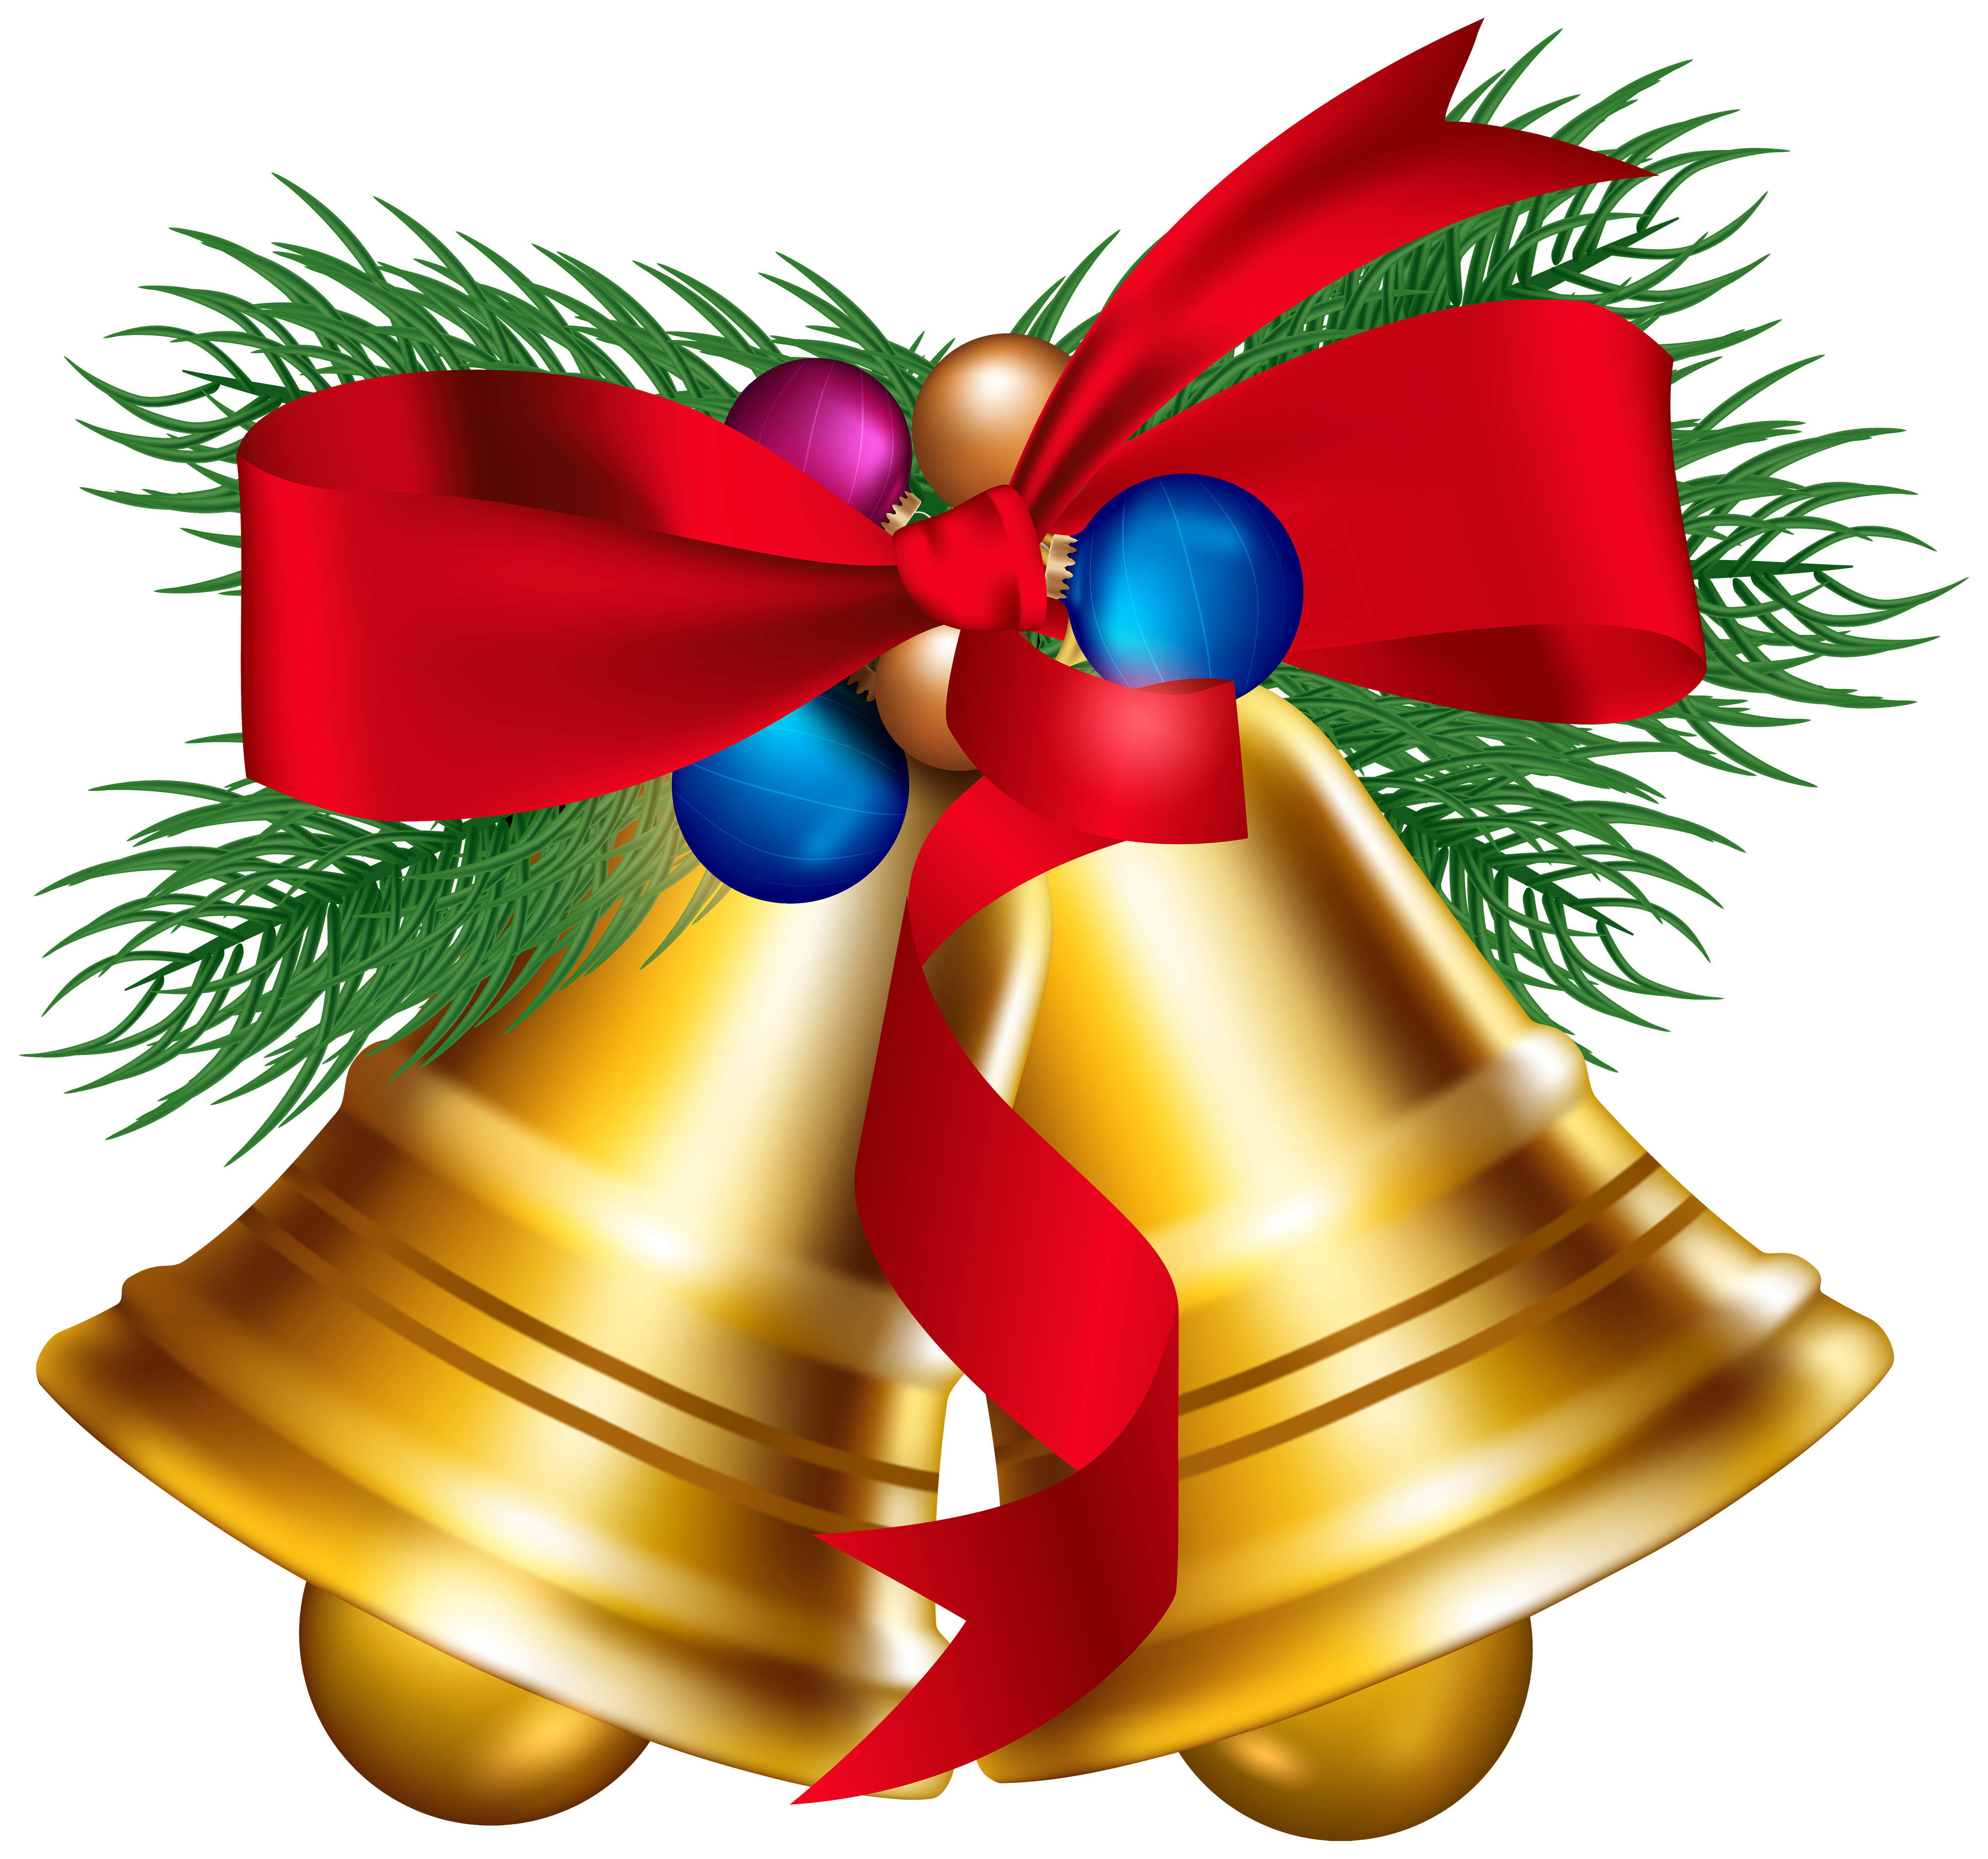 Hugging clipart christmas. Images of bells with